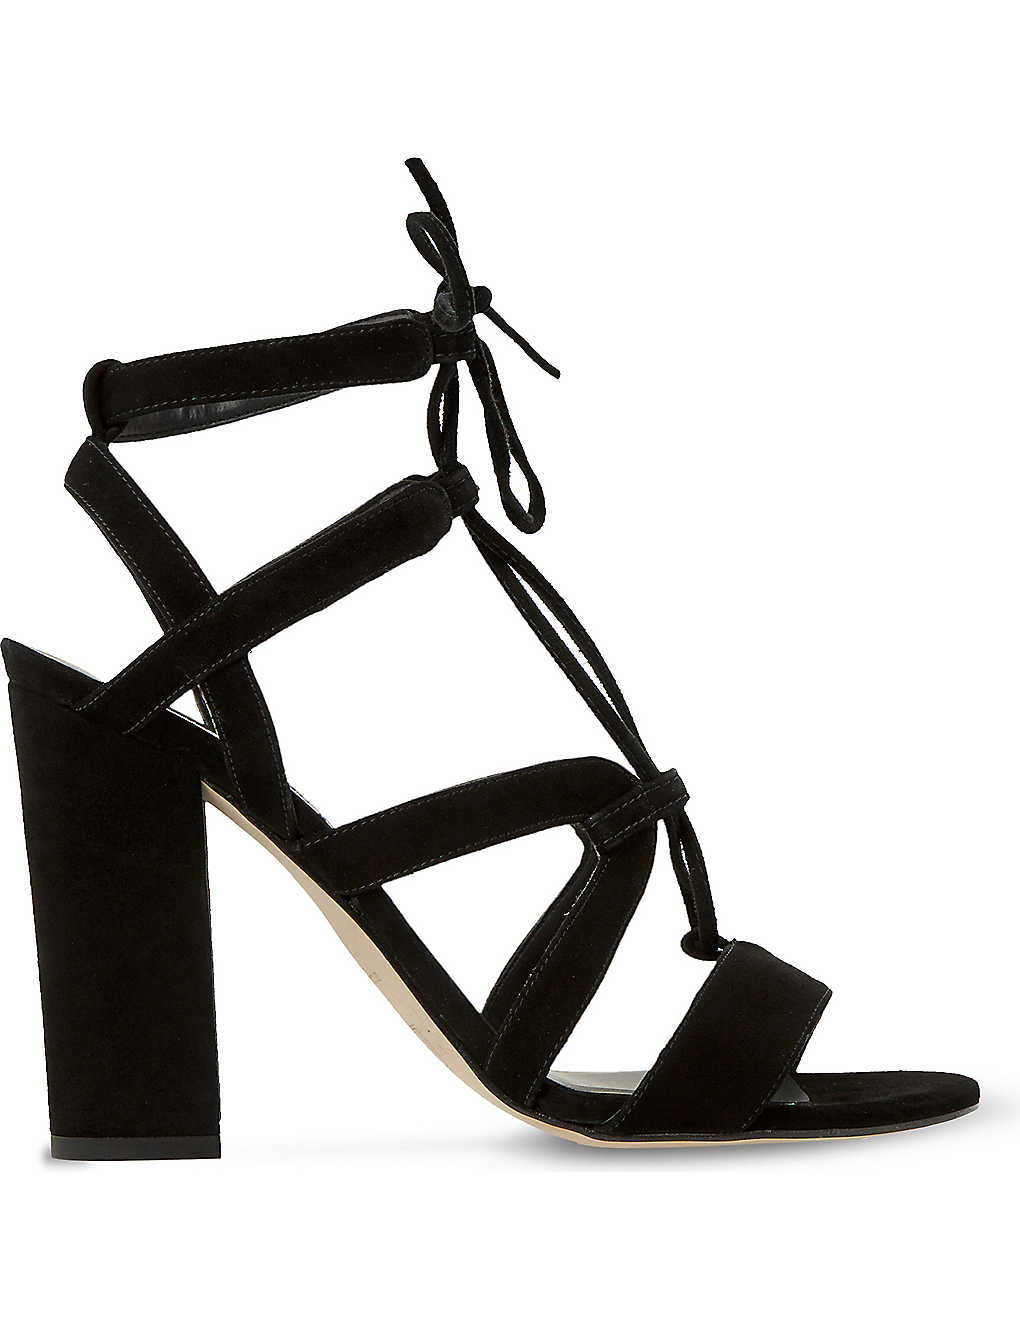 3acf4b3692ad DUNE - Marlow suede heeled sandals